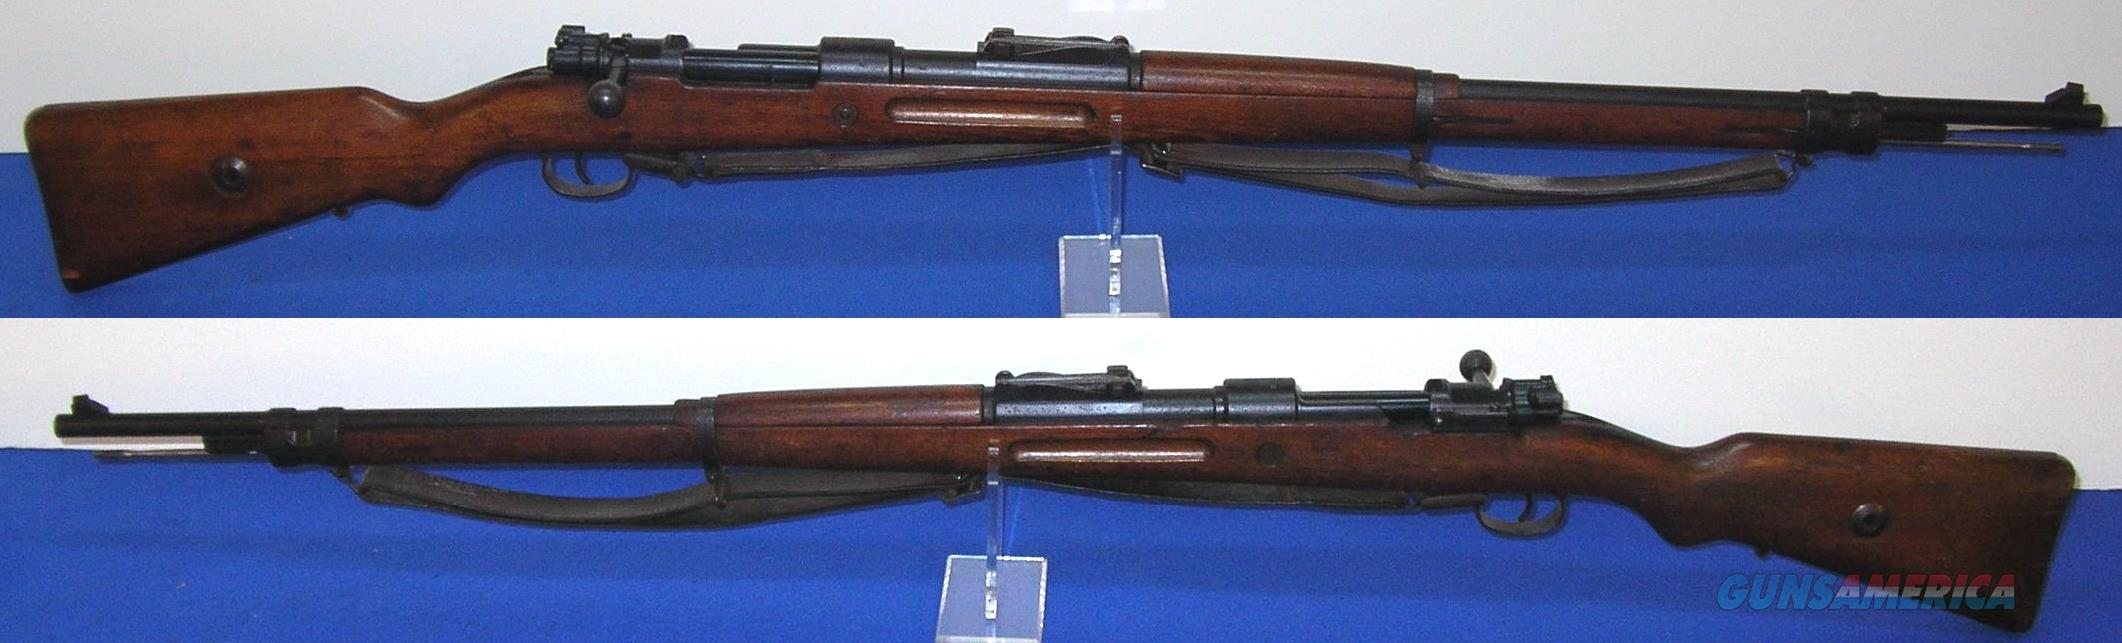 Polish F. B. Radom wz.1898a Rifle (Extremely Rare)  Guns > Rifles > Military Misc. Rifles Non-US > Other